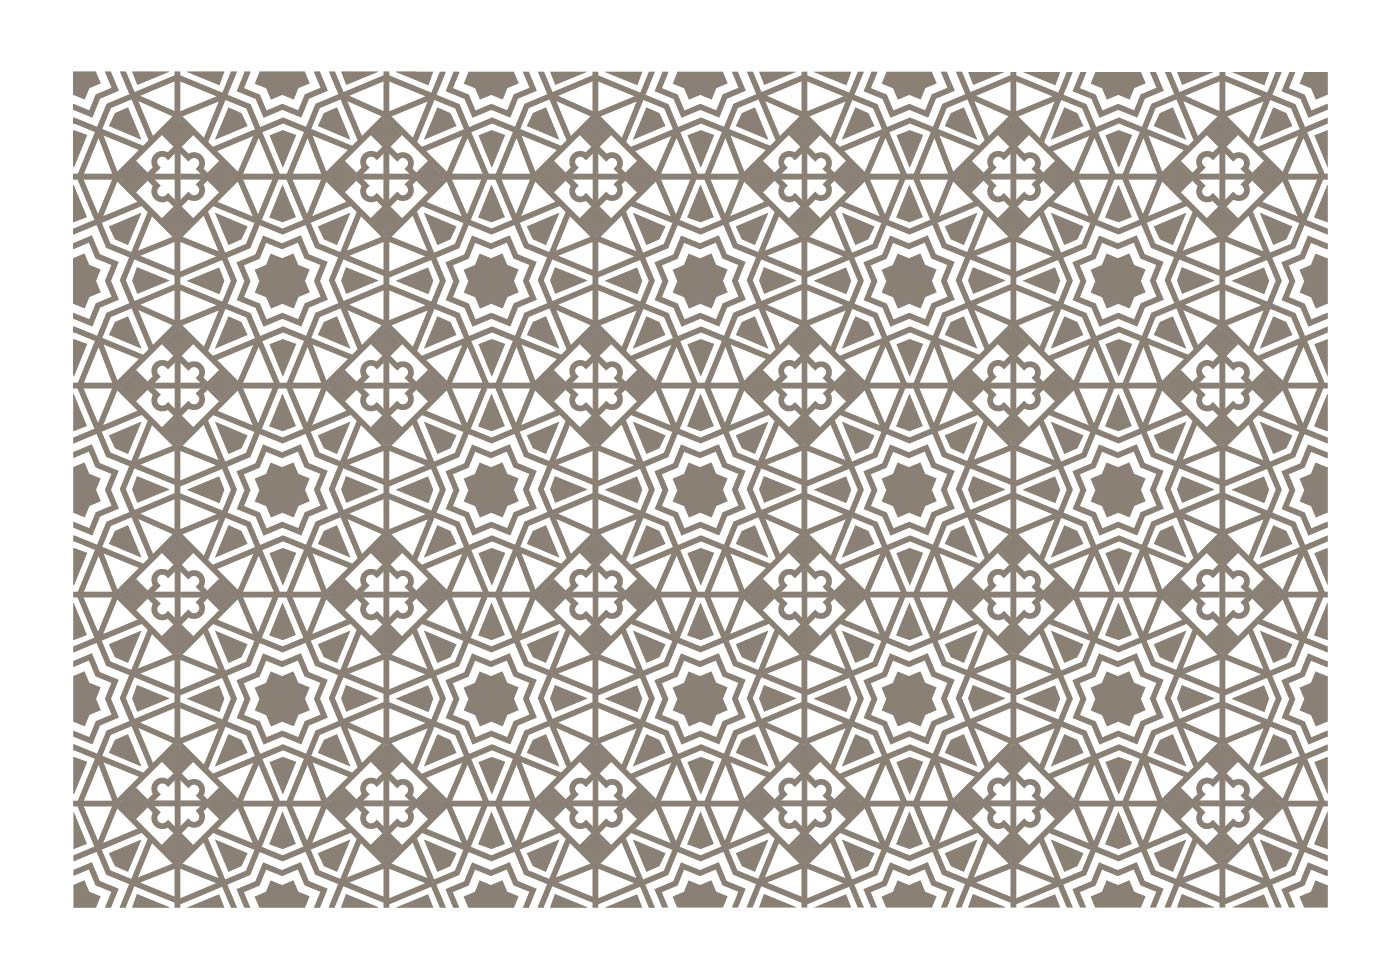 Free clipart turkish tile background black and white banner free library Turkish Pattern Free Vector Art - (2,553 Free Downloads) banner free library